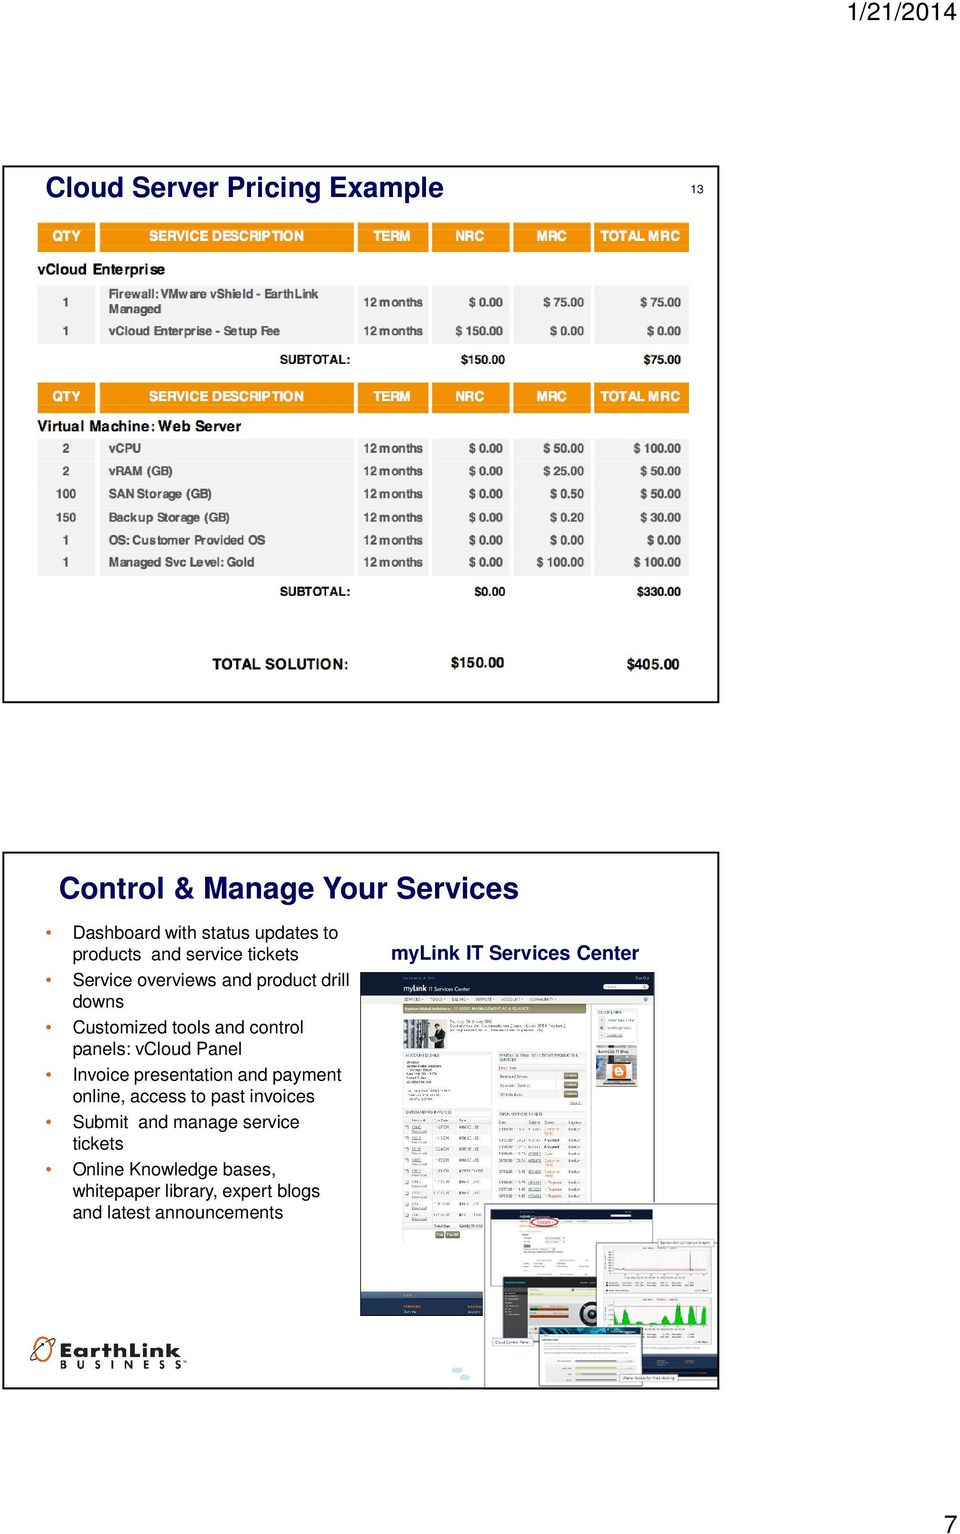 Panel Invoice presentation and payment online, access to past invoices Submit and manage service tickets